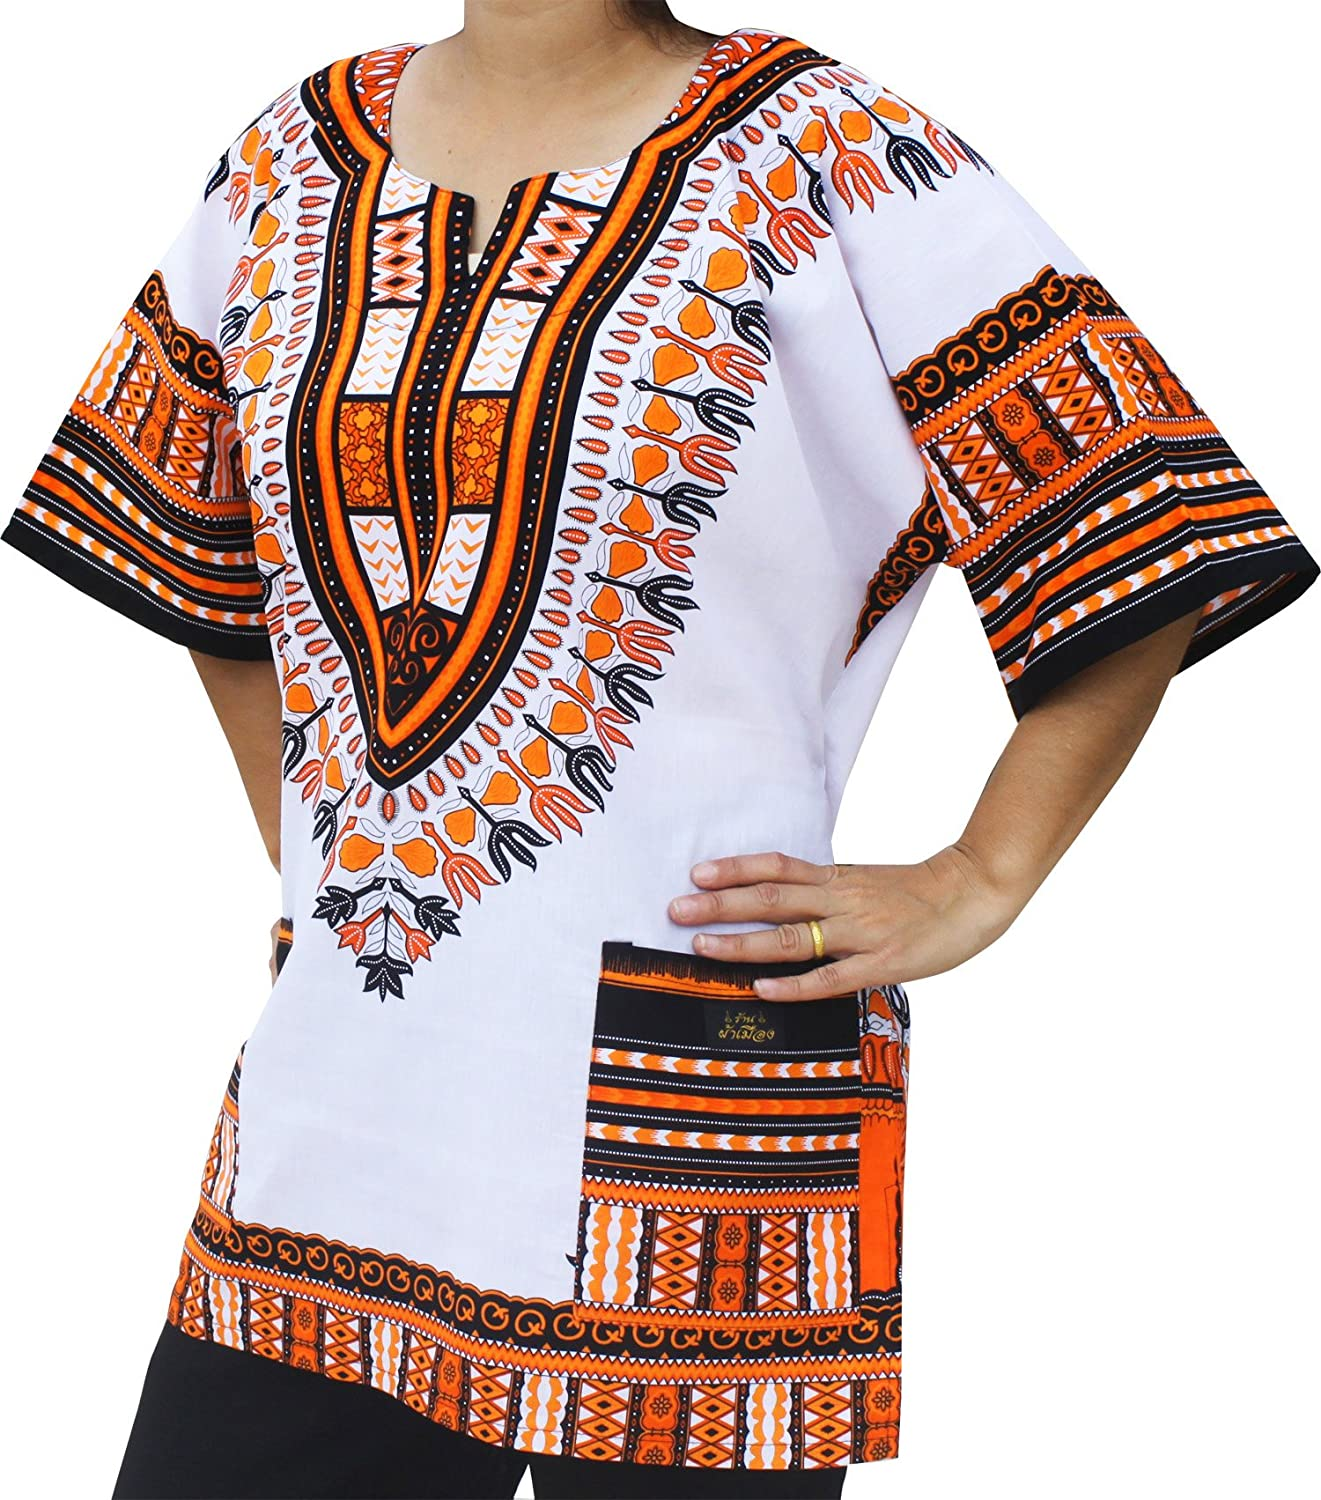 70s Costumes: Disco Costumes, Hippie Outfits RaanPahMuang Unisex African Dashiki Kaftan Shirt all sizes XS - 7XL All Colours $25.70 AT vintagedancer.com